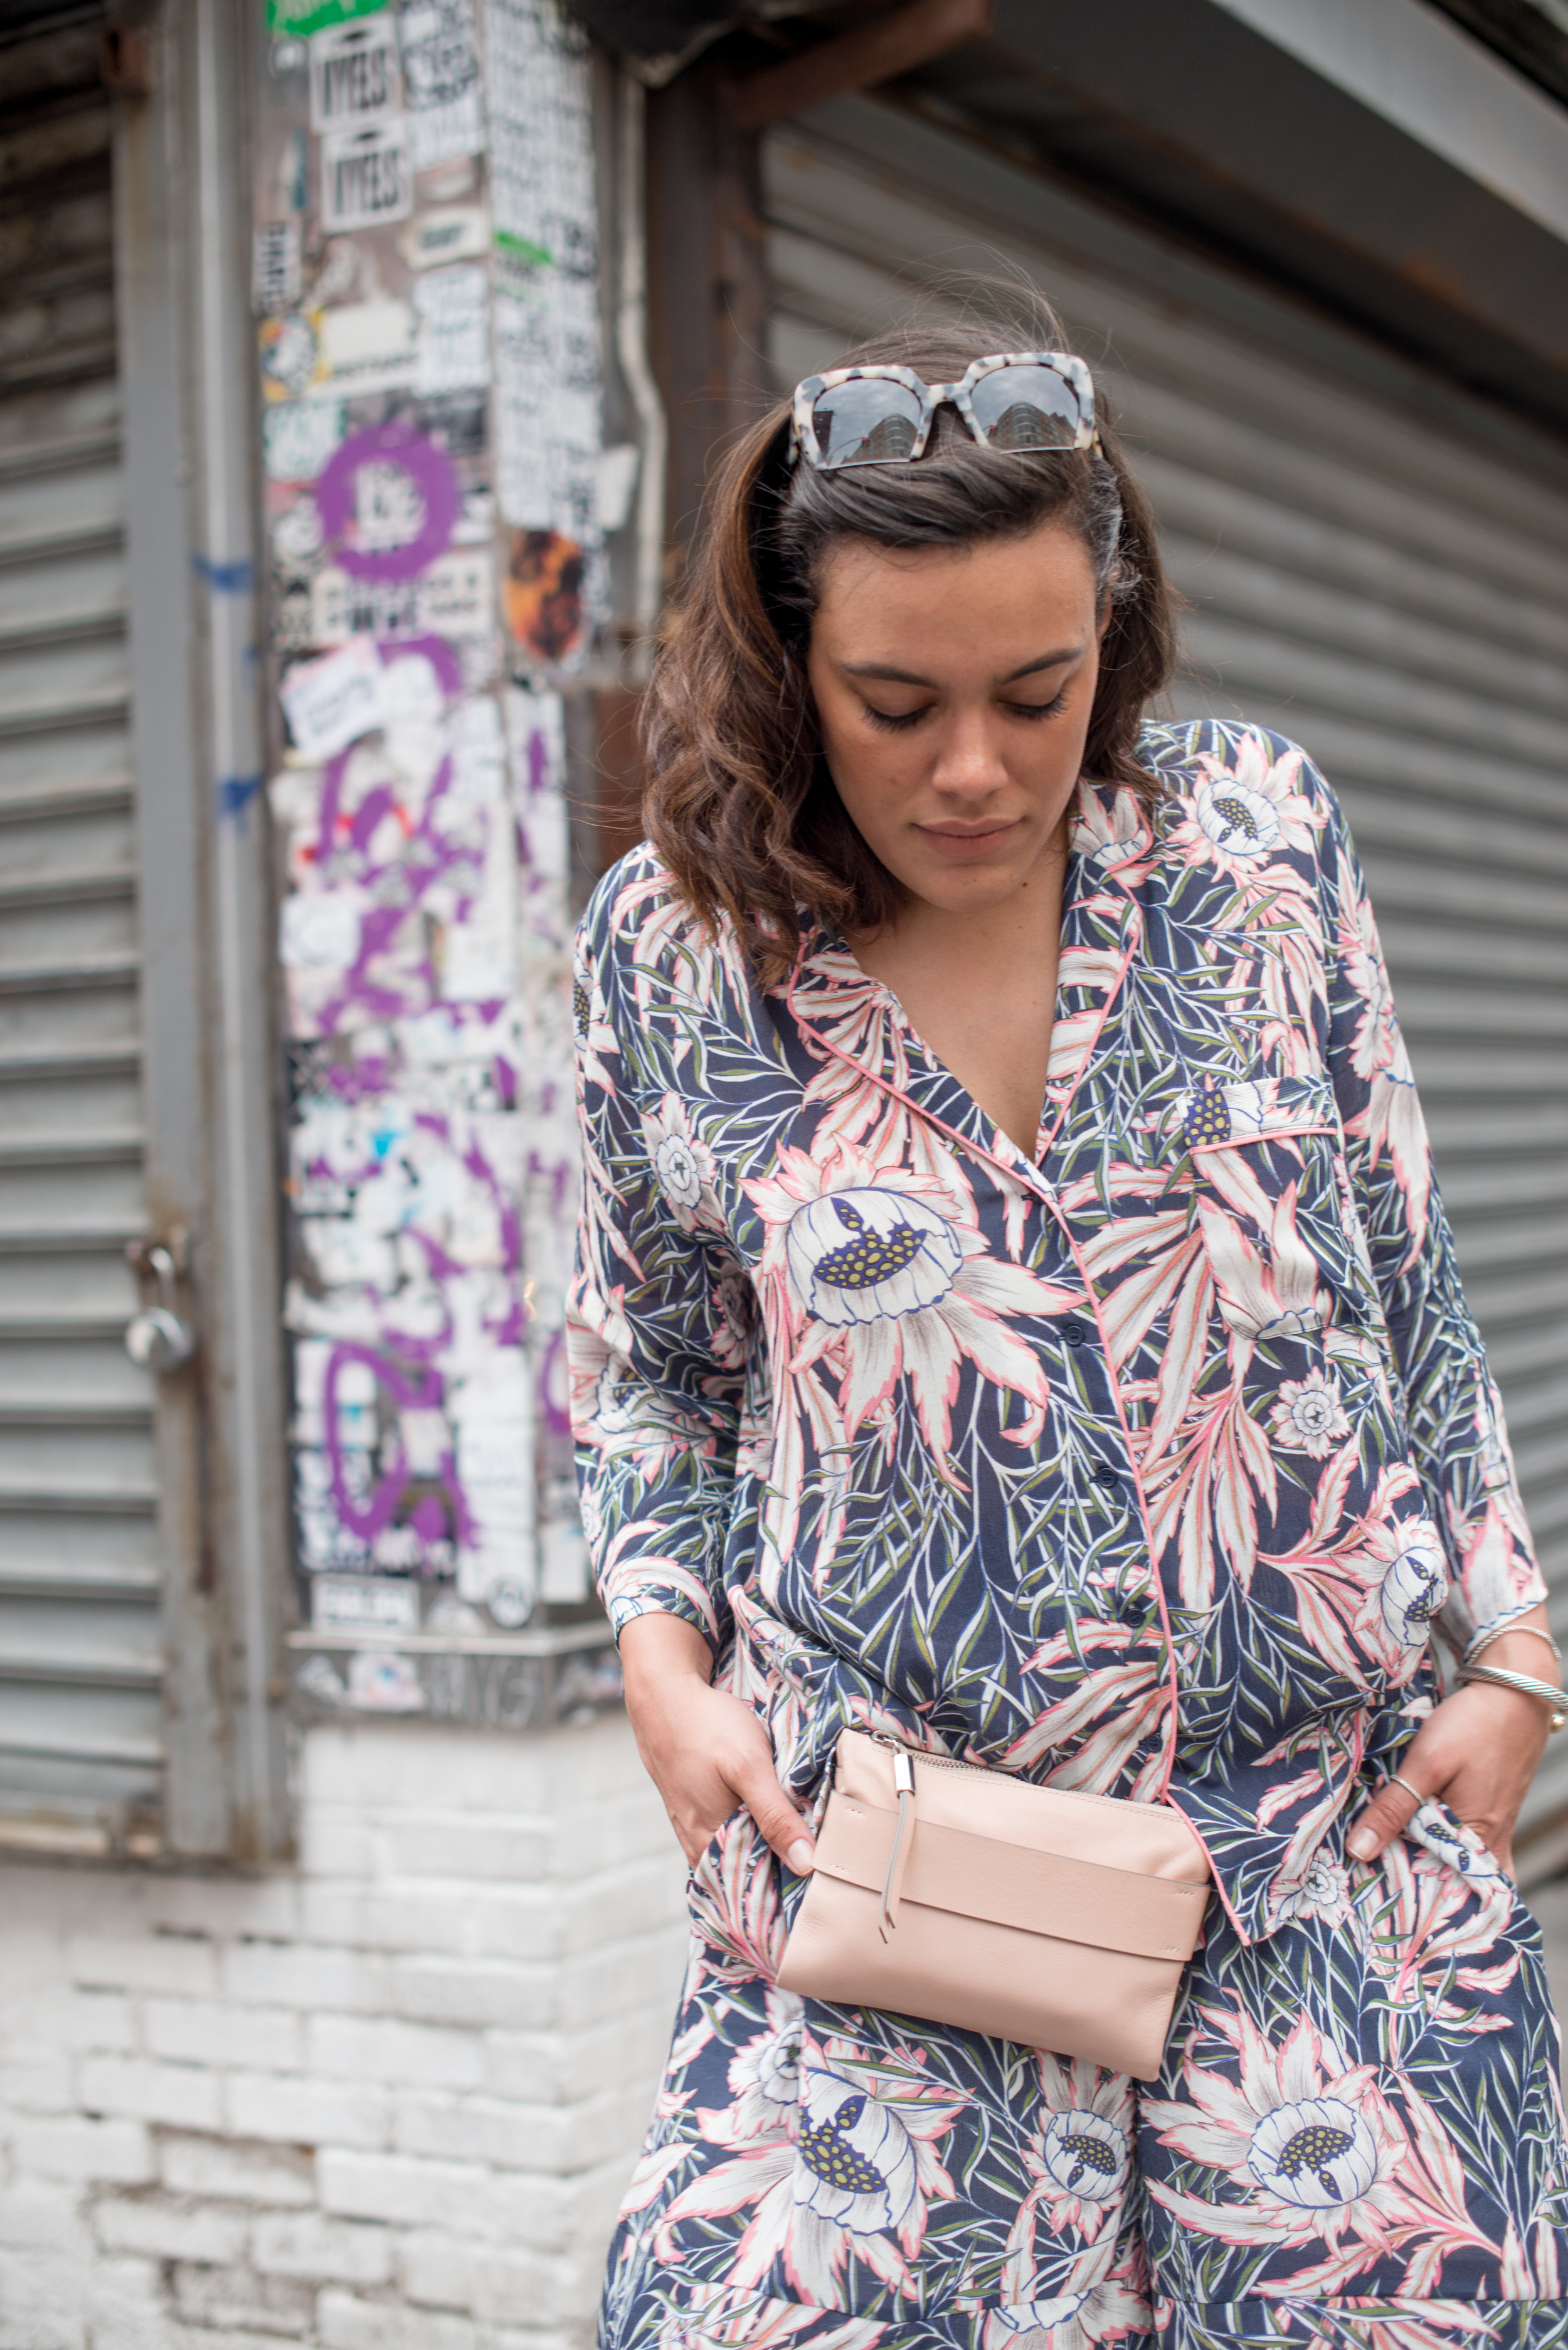 how-to-wear-the-pajama-trend-this-season-what-to-wear-when-it's-really-hot-outside-latina-new-york-city-fashion-blogger-style-operator-summer-fashion.jpg